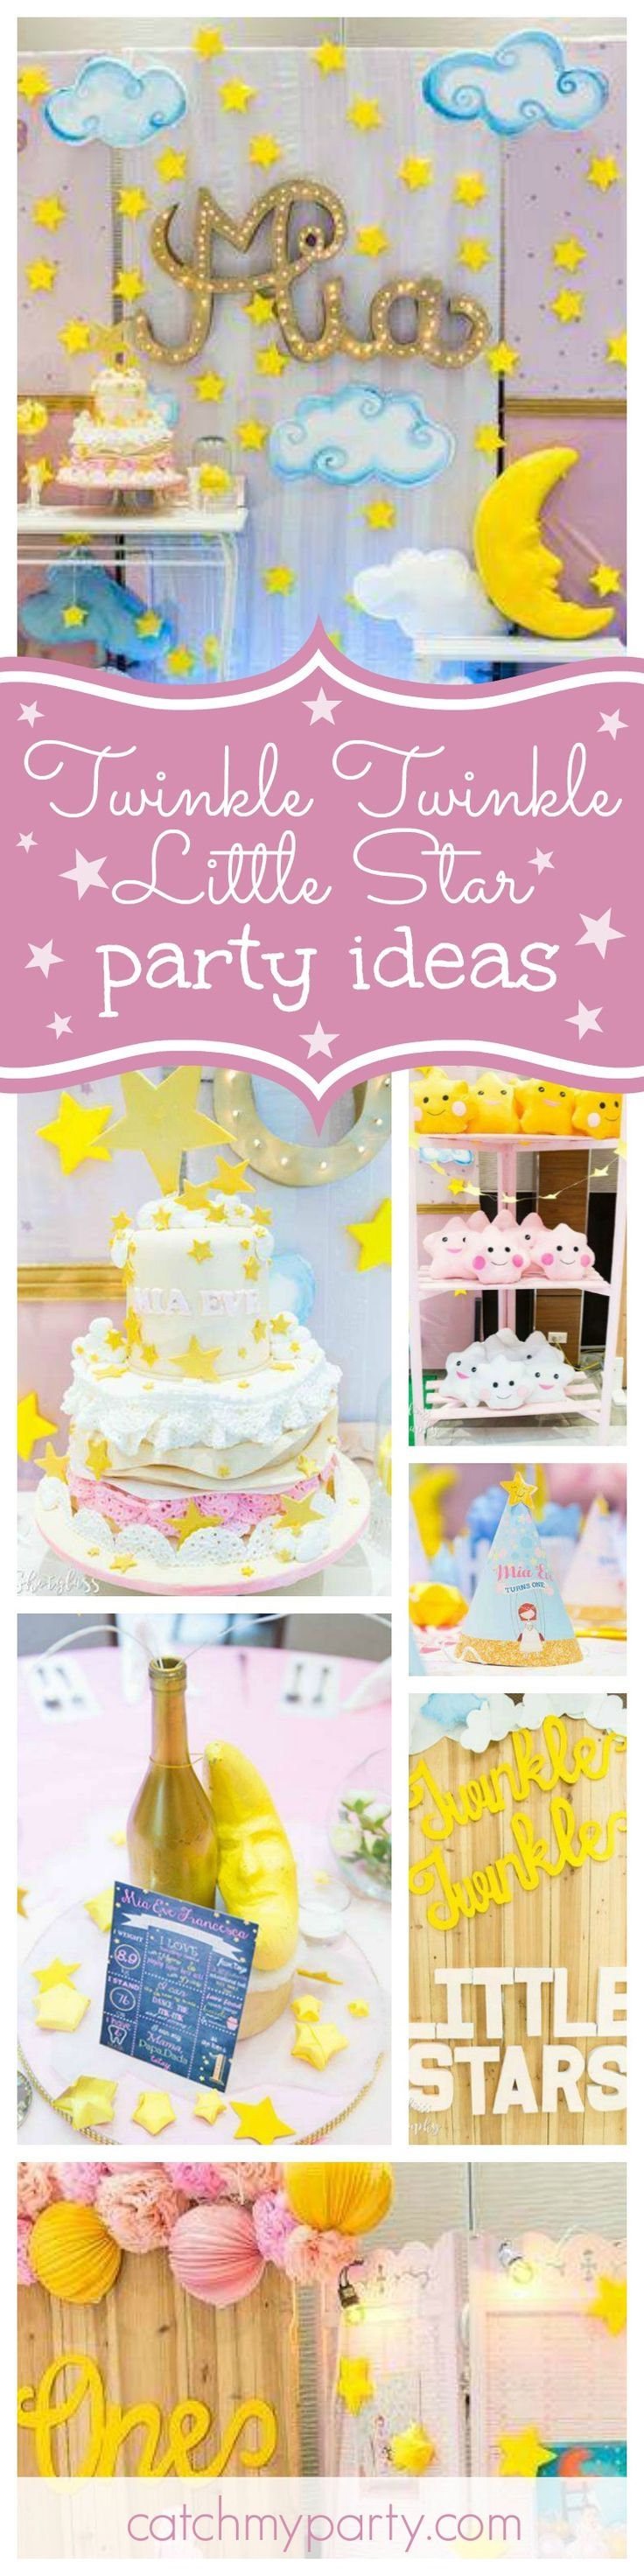 Don't miss this gorgeous Twinkle Twinkle Little Star 1st birthday Party. The birthday cake is so beautiful!! See more party ideas and share yours at CatchMyParty.com